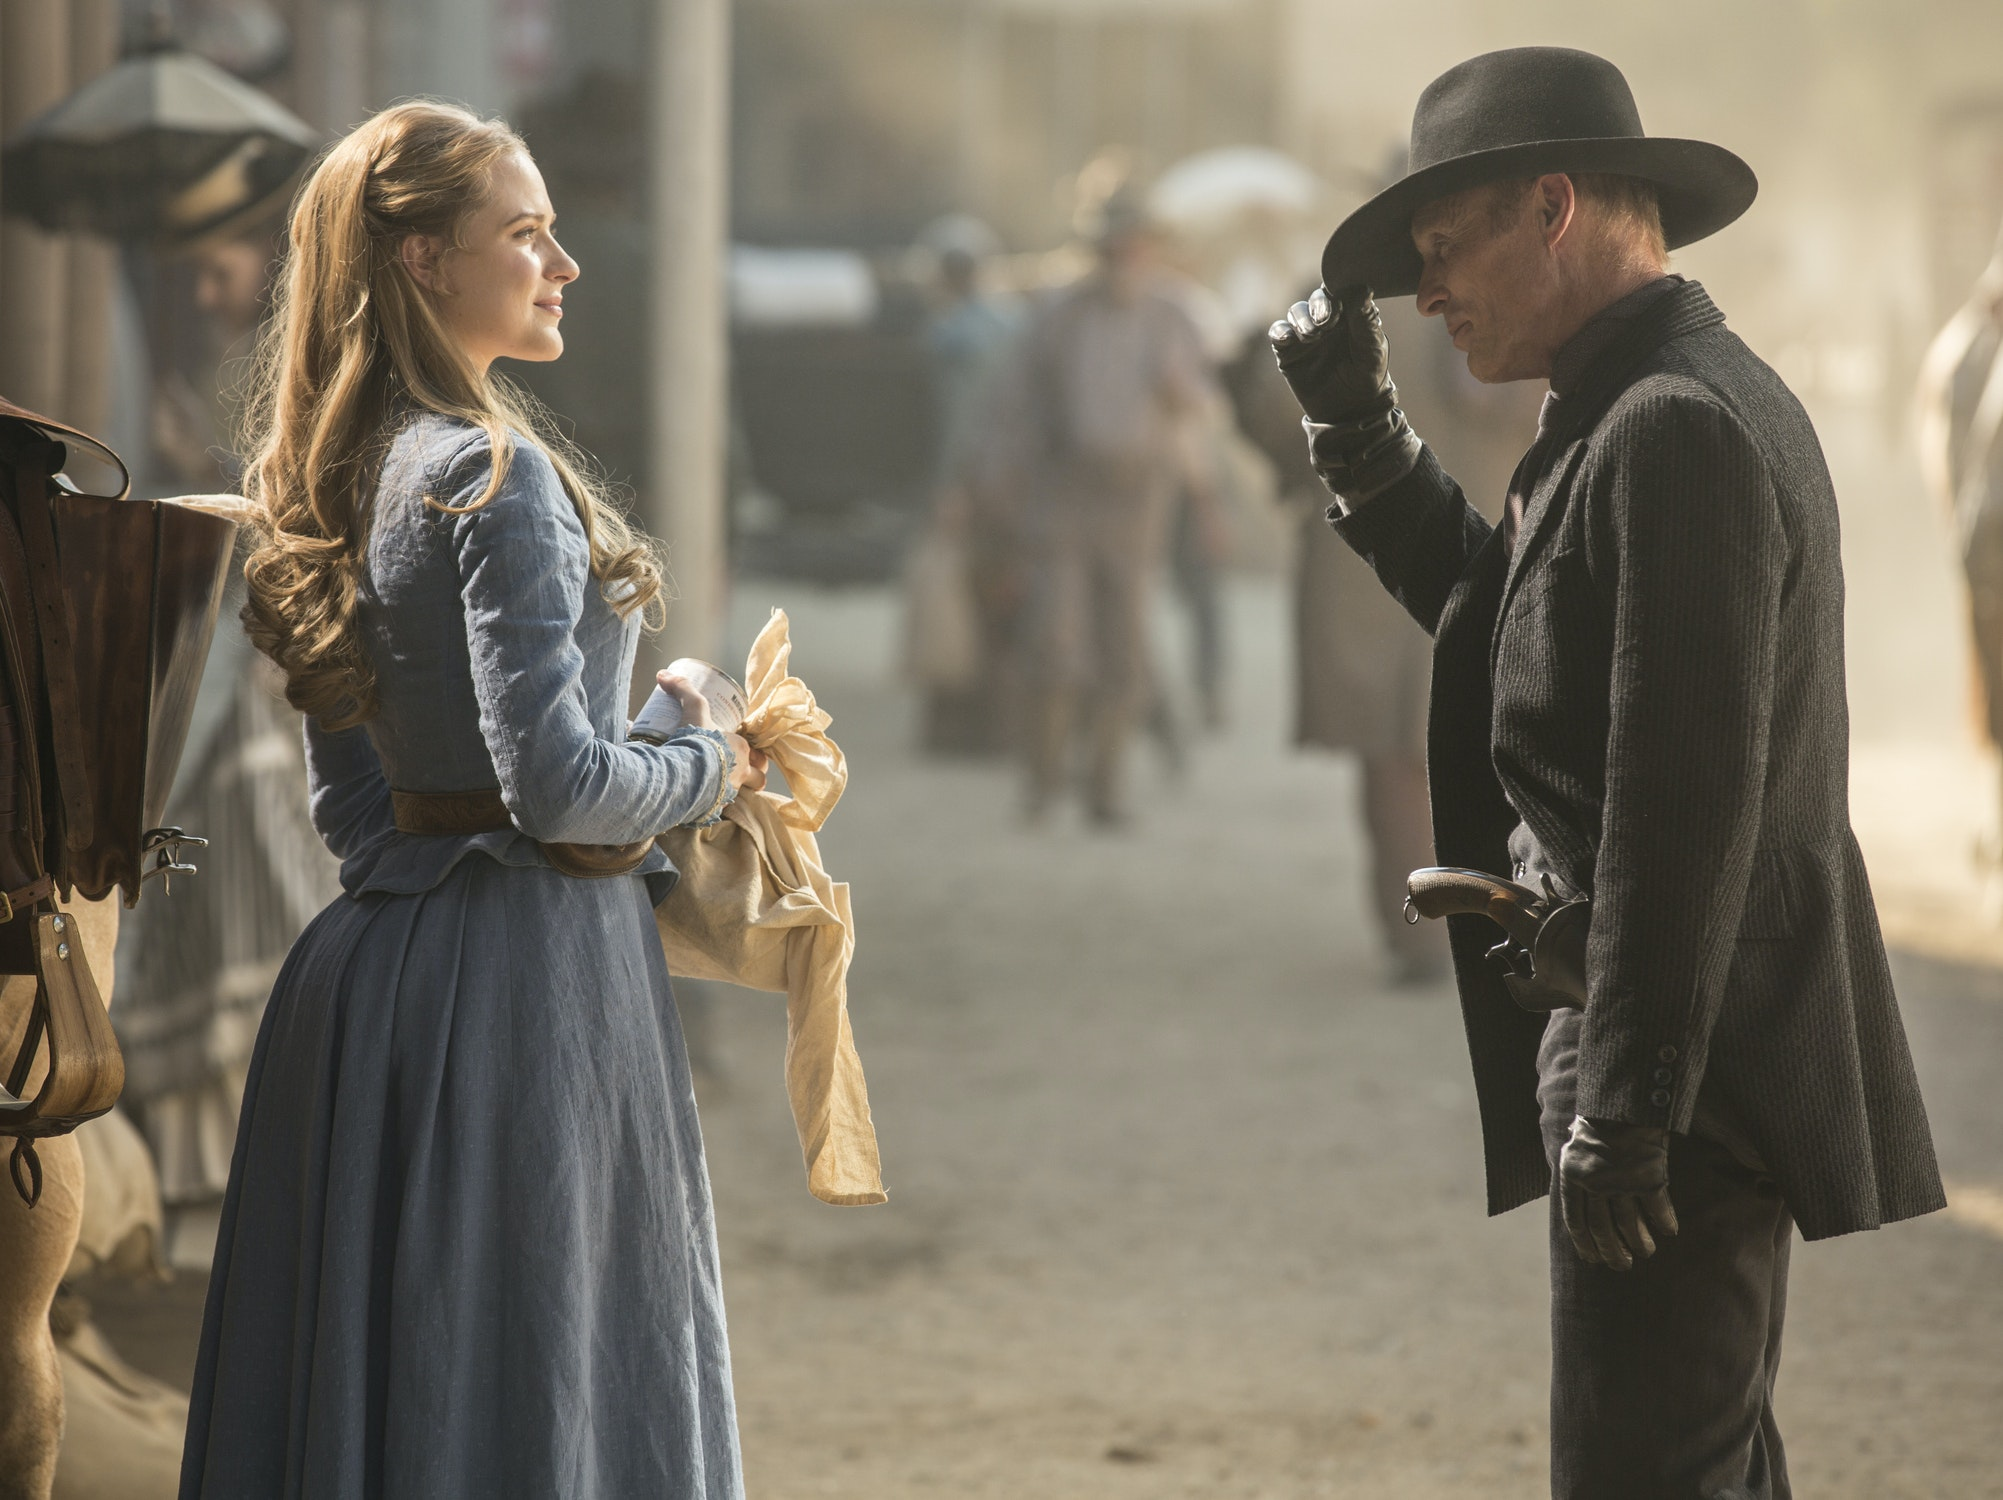 'Westworld' is Lit: Hunting HBO's Literary Reveries